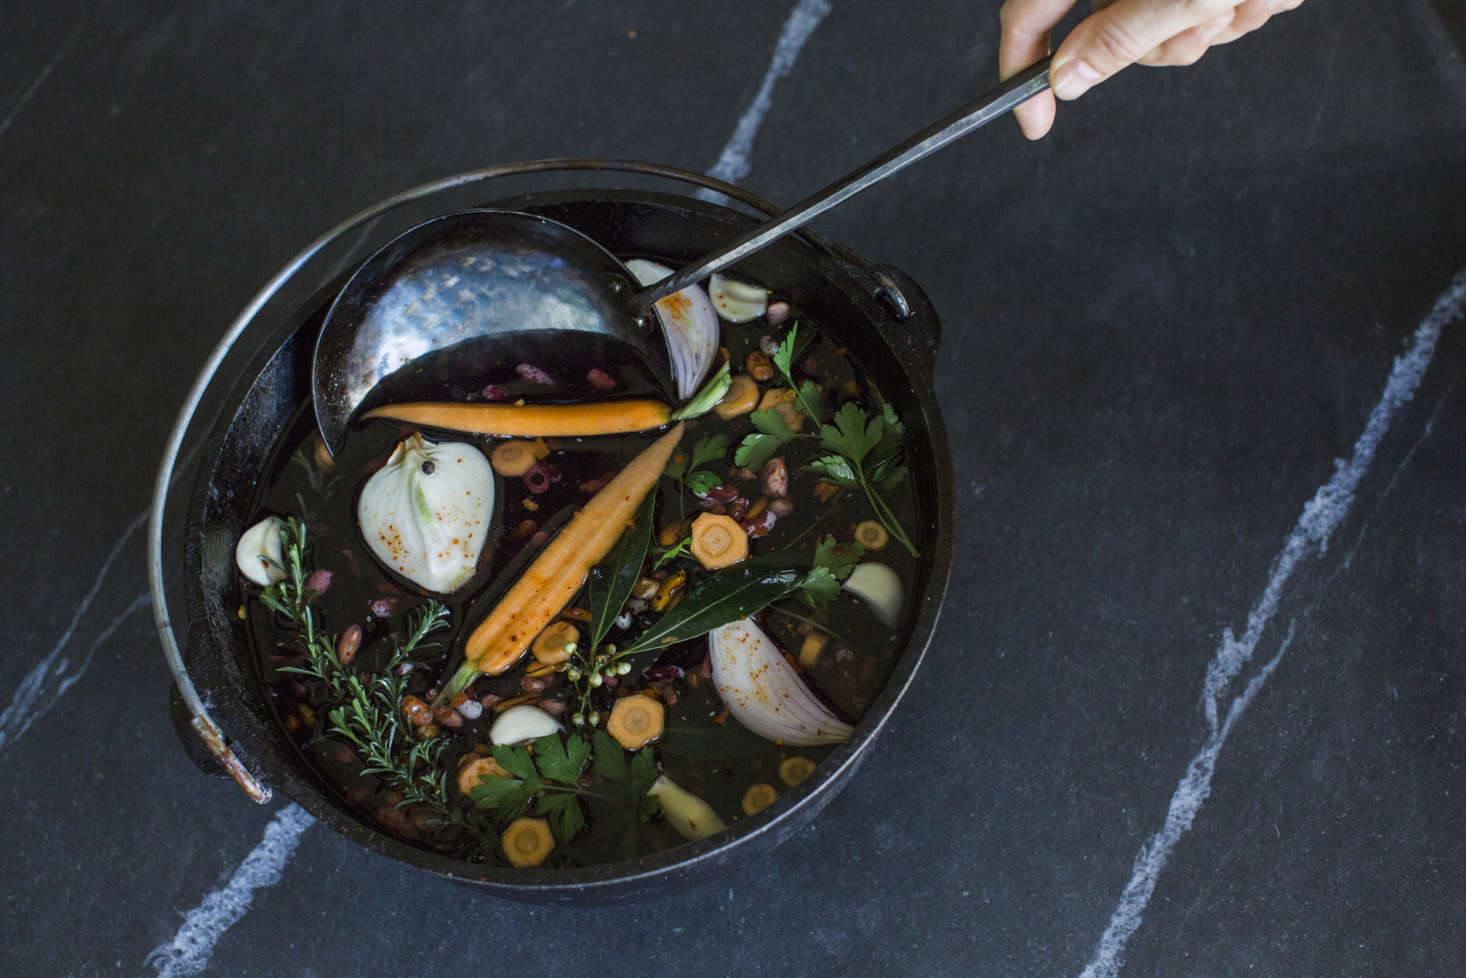 The heirloom-quality spoon can also be used as a ladle.